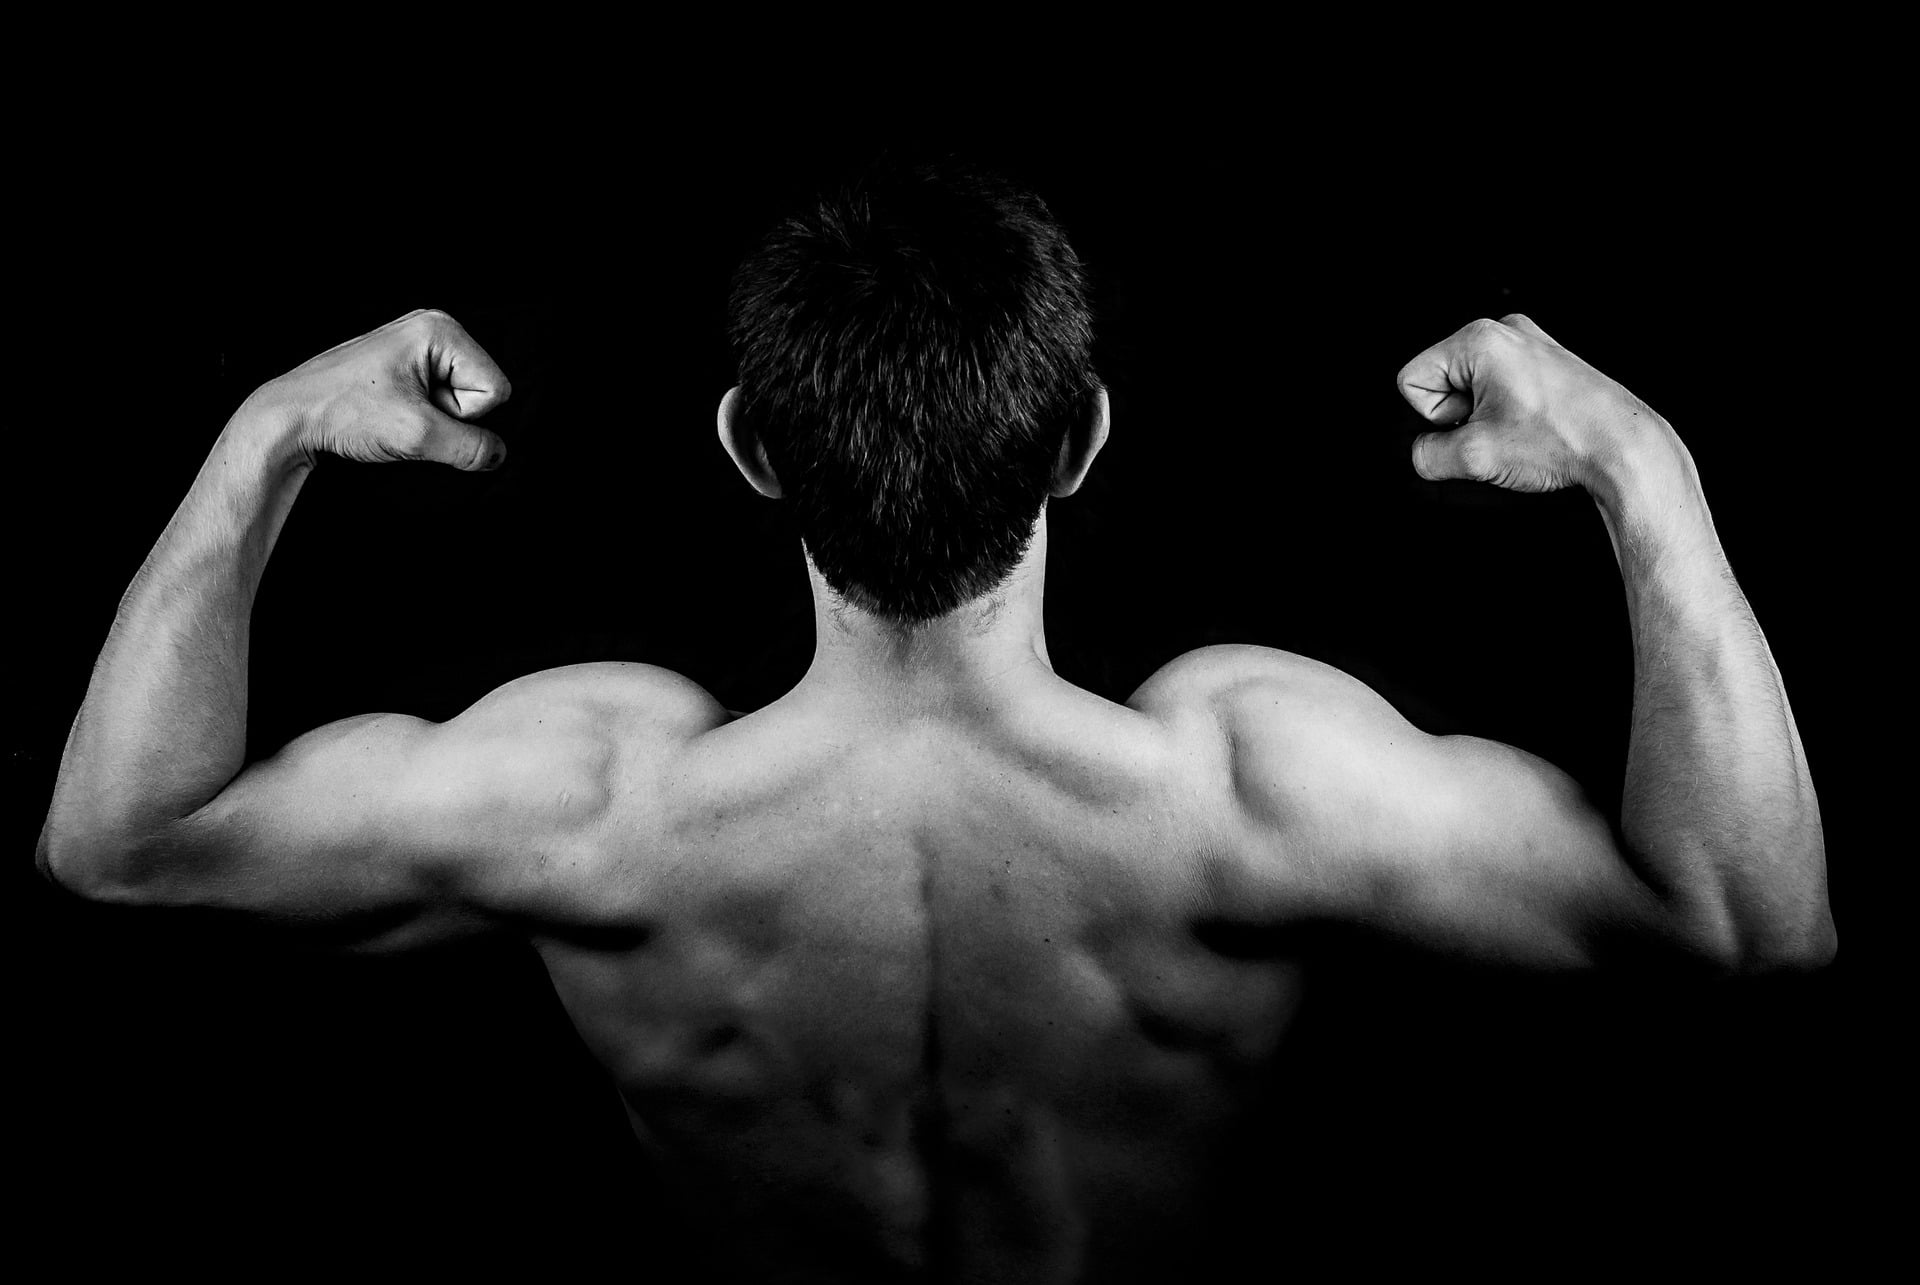 Man flexing arms and back